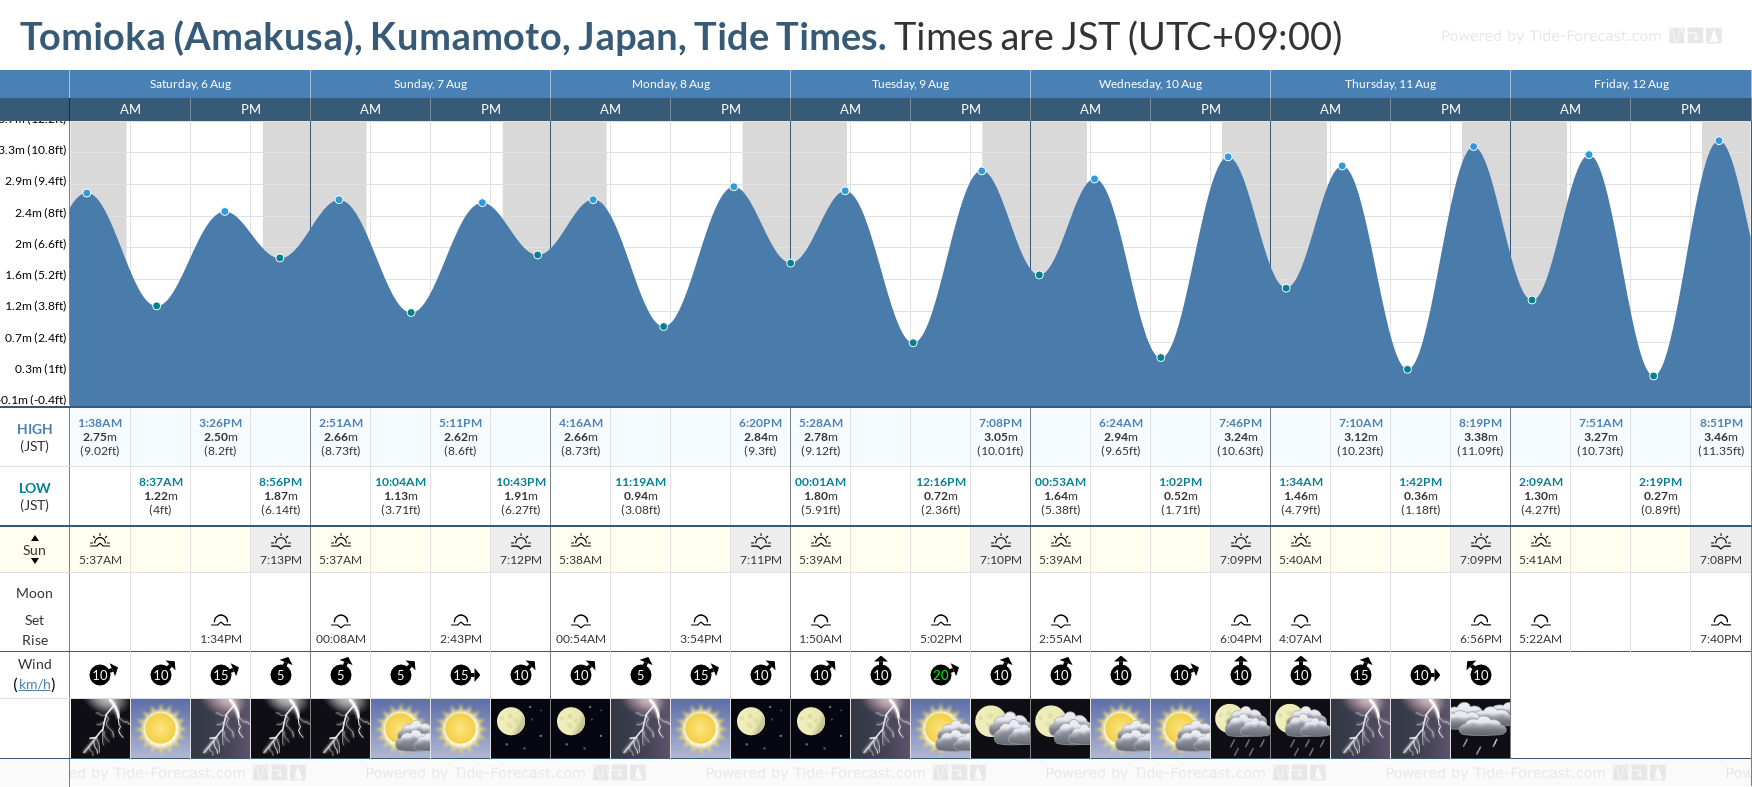 Tomioka (Amakusa), Kumamoto, Japan Tide Chart including high and low tide tide times for the next 7 days